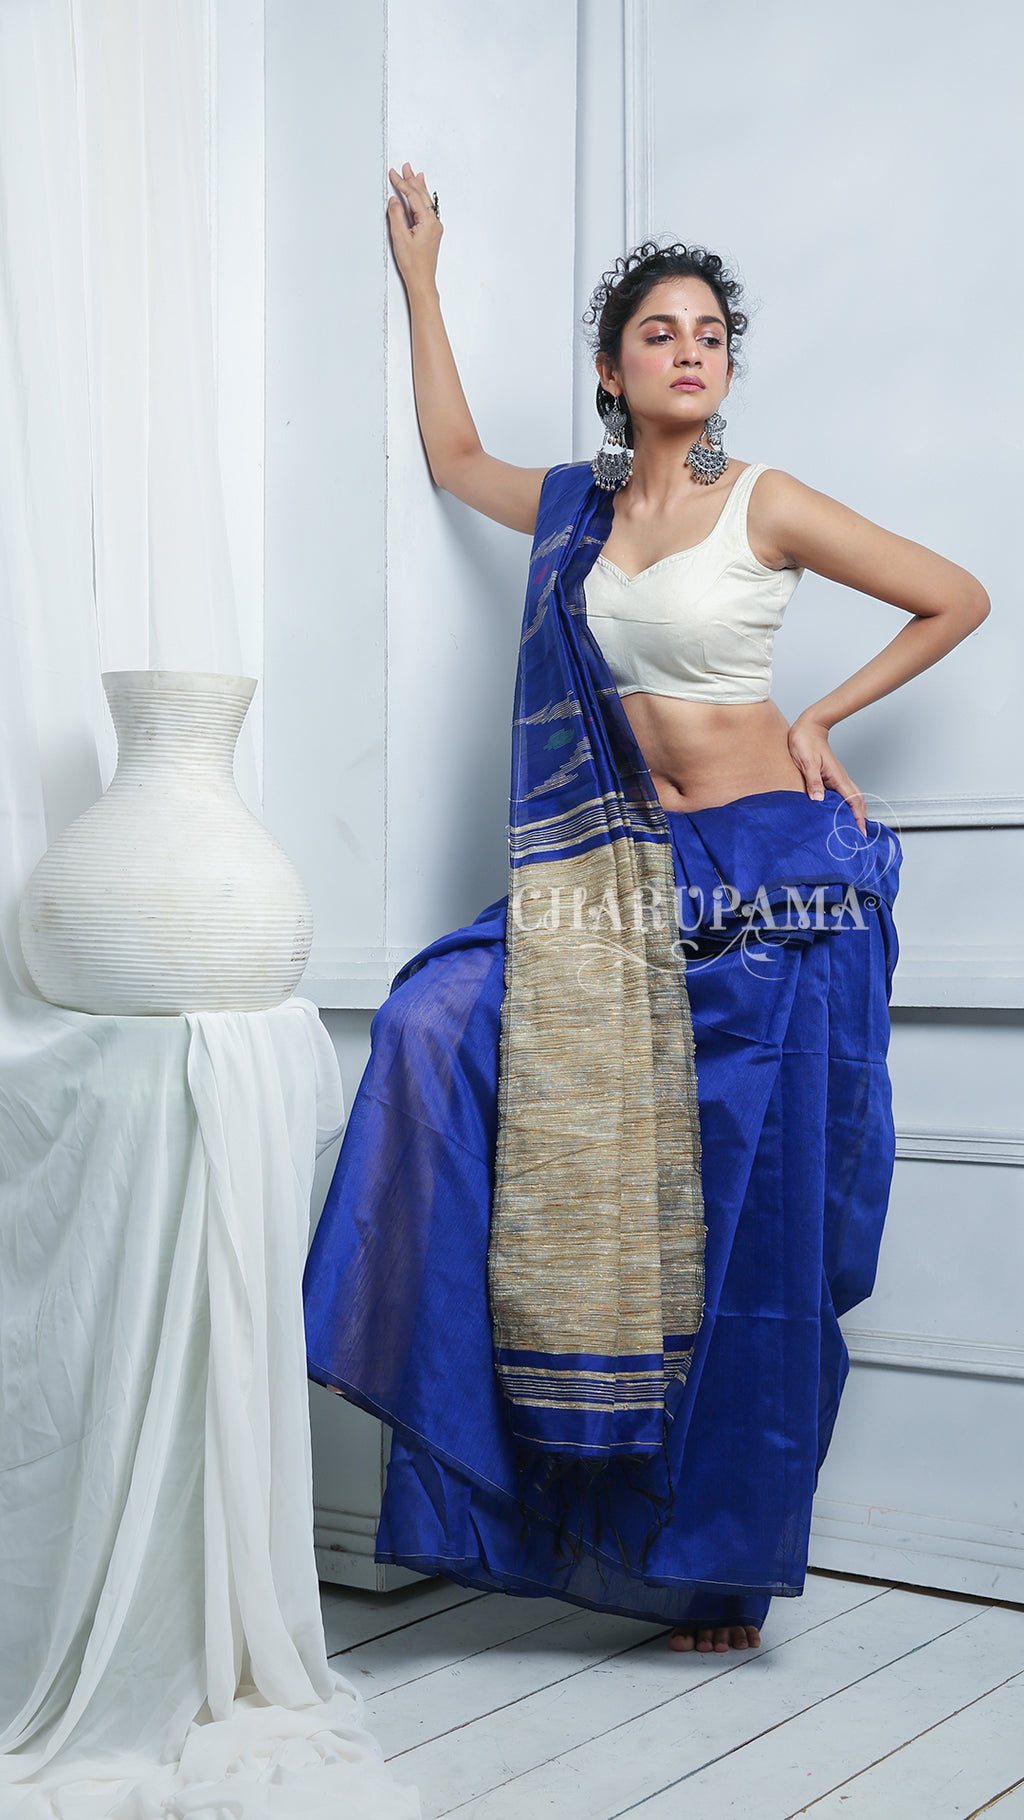 This Blended Cotton Saree Brings You Comfort With Style. Perfect For Office, Home And Party Wear. A Simple Wrap With Designer Blouse Or Top On These Saree Gives You Lucent And Vibrant Look. - Charupama